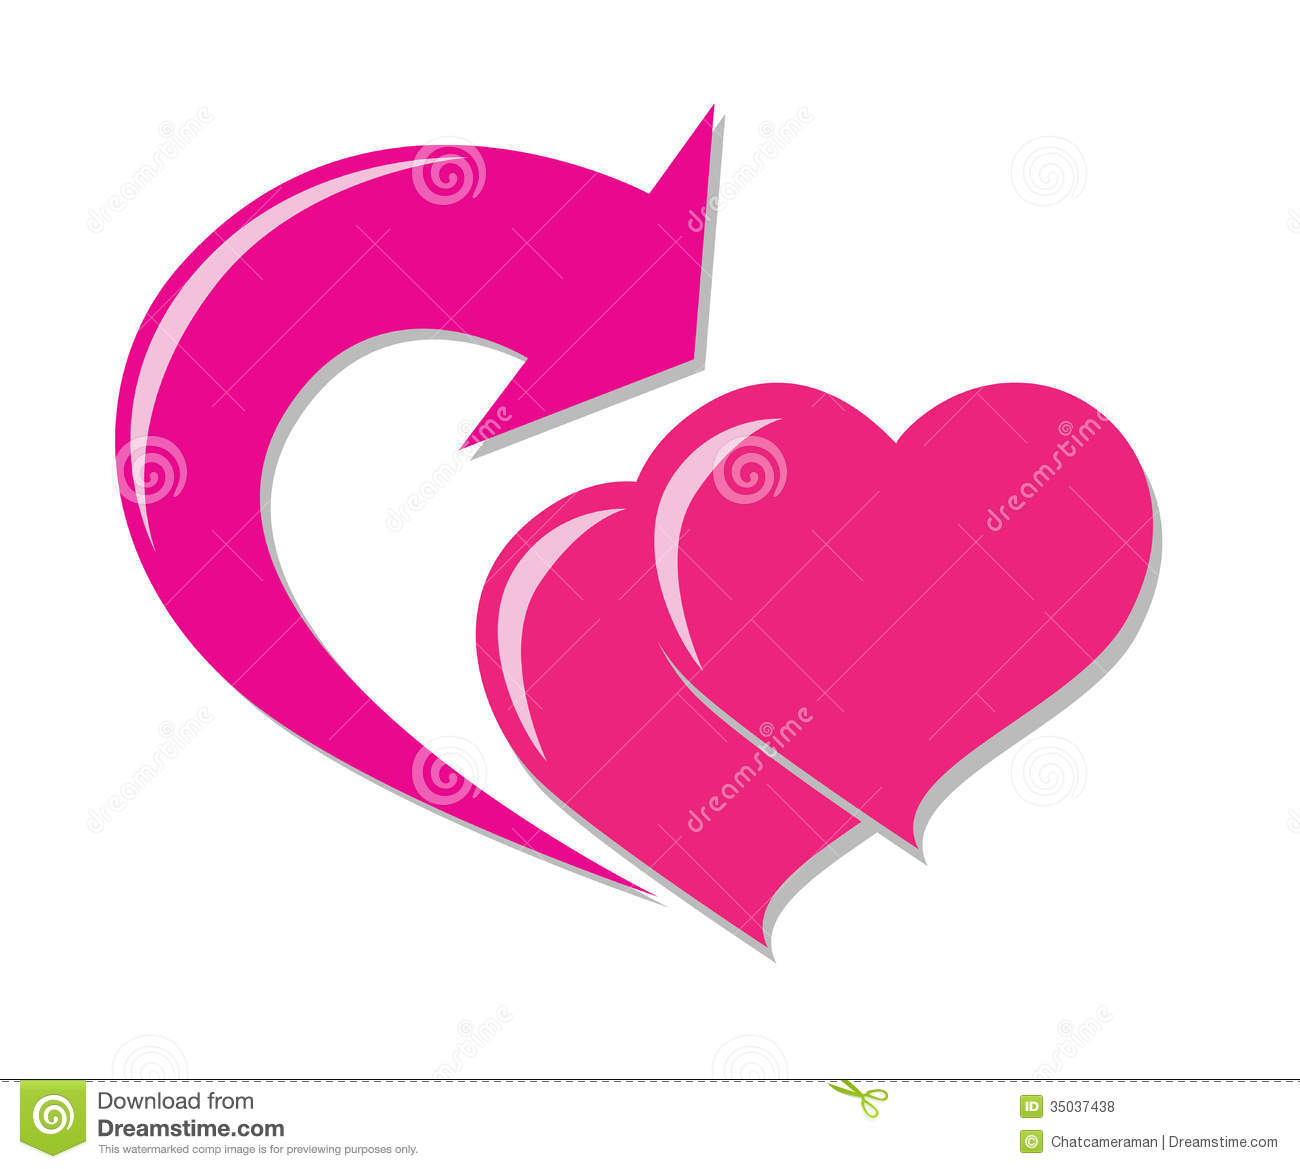 Love symbol with arrow clipart jpg black and white stock Love Return Icon Royalty Free Stock Photos - Image: 35037438 jpg black and white stock